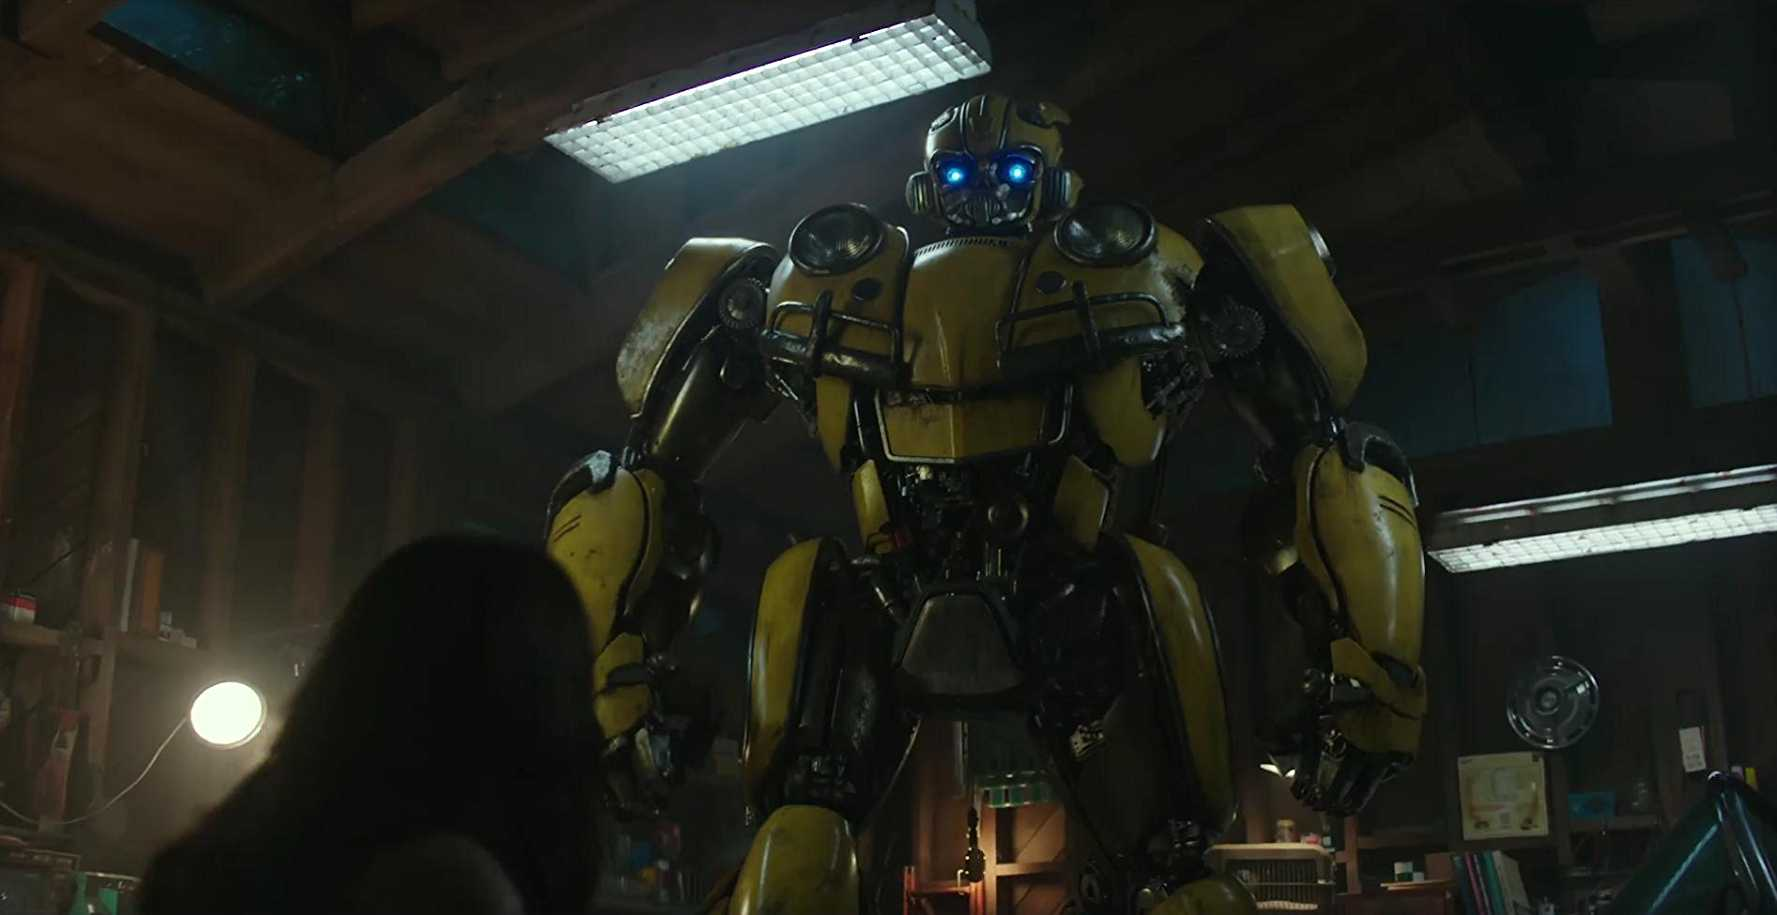 A still from the Bumblebee movie (IMDB)